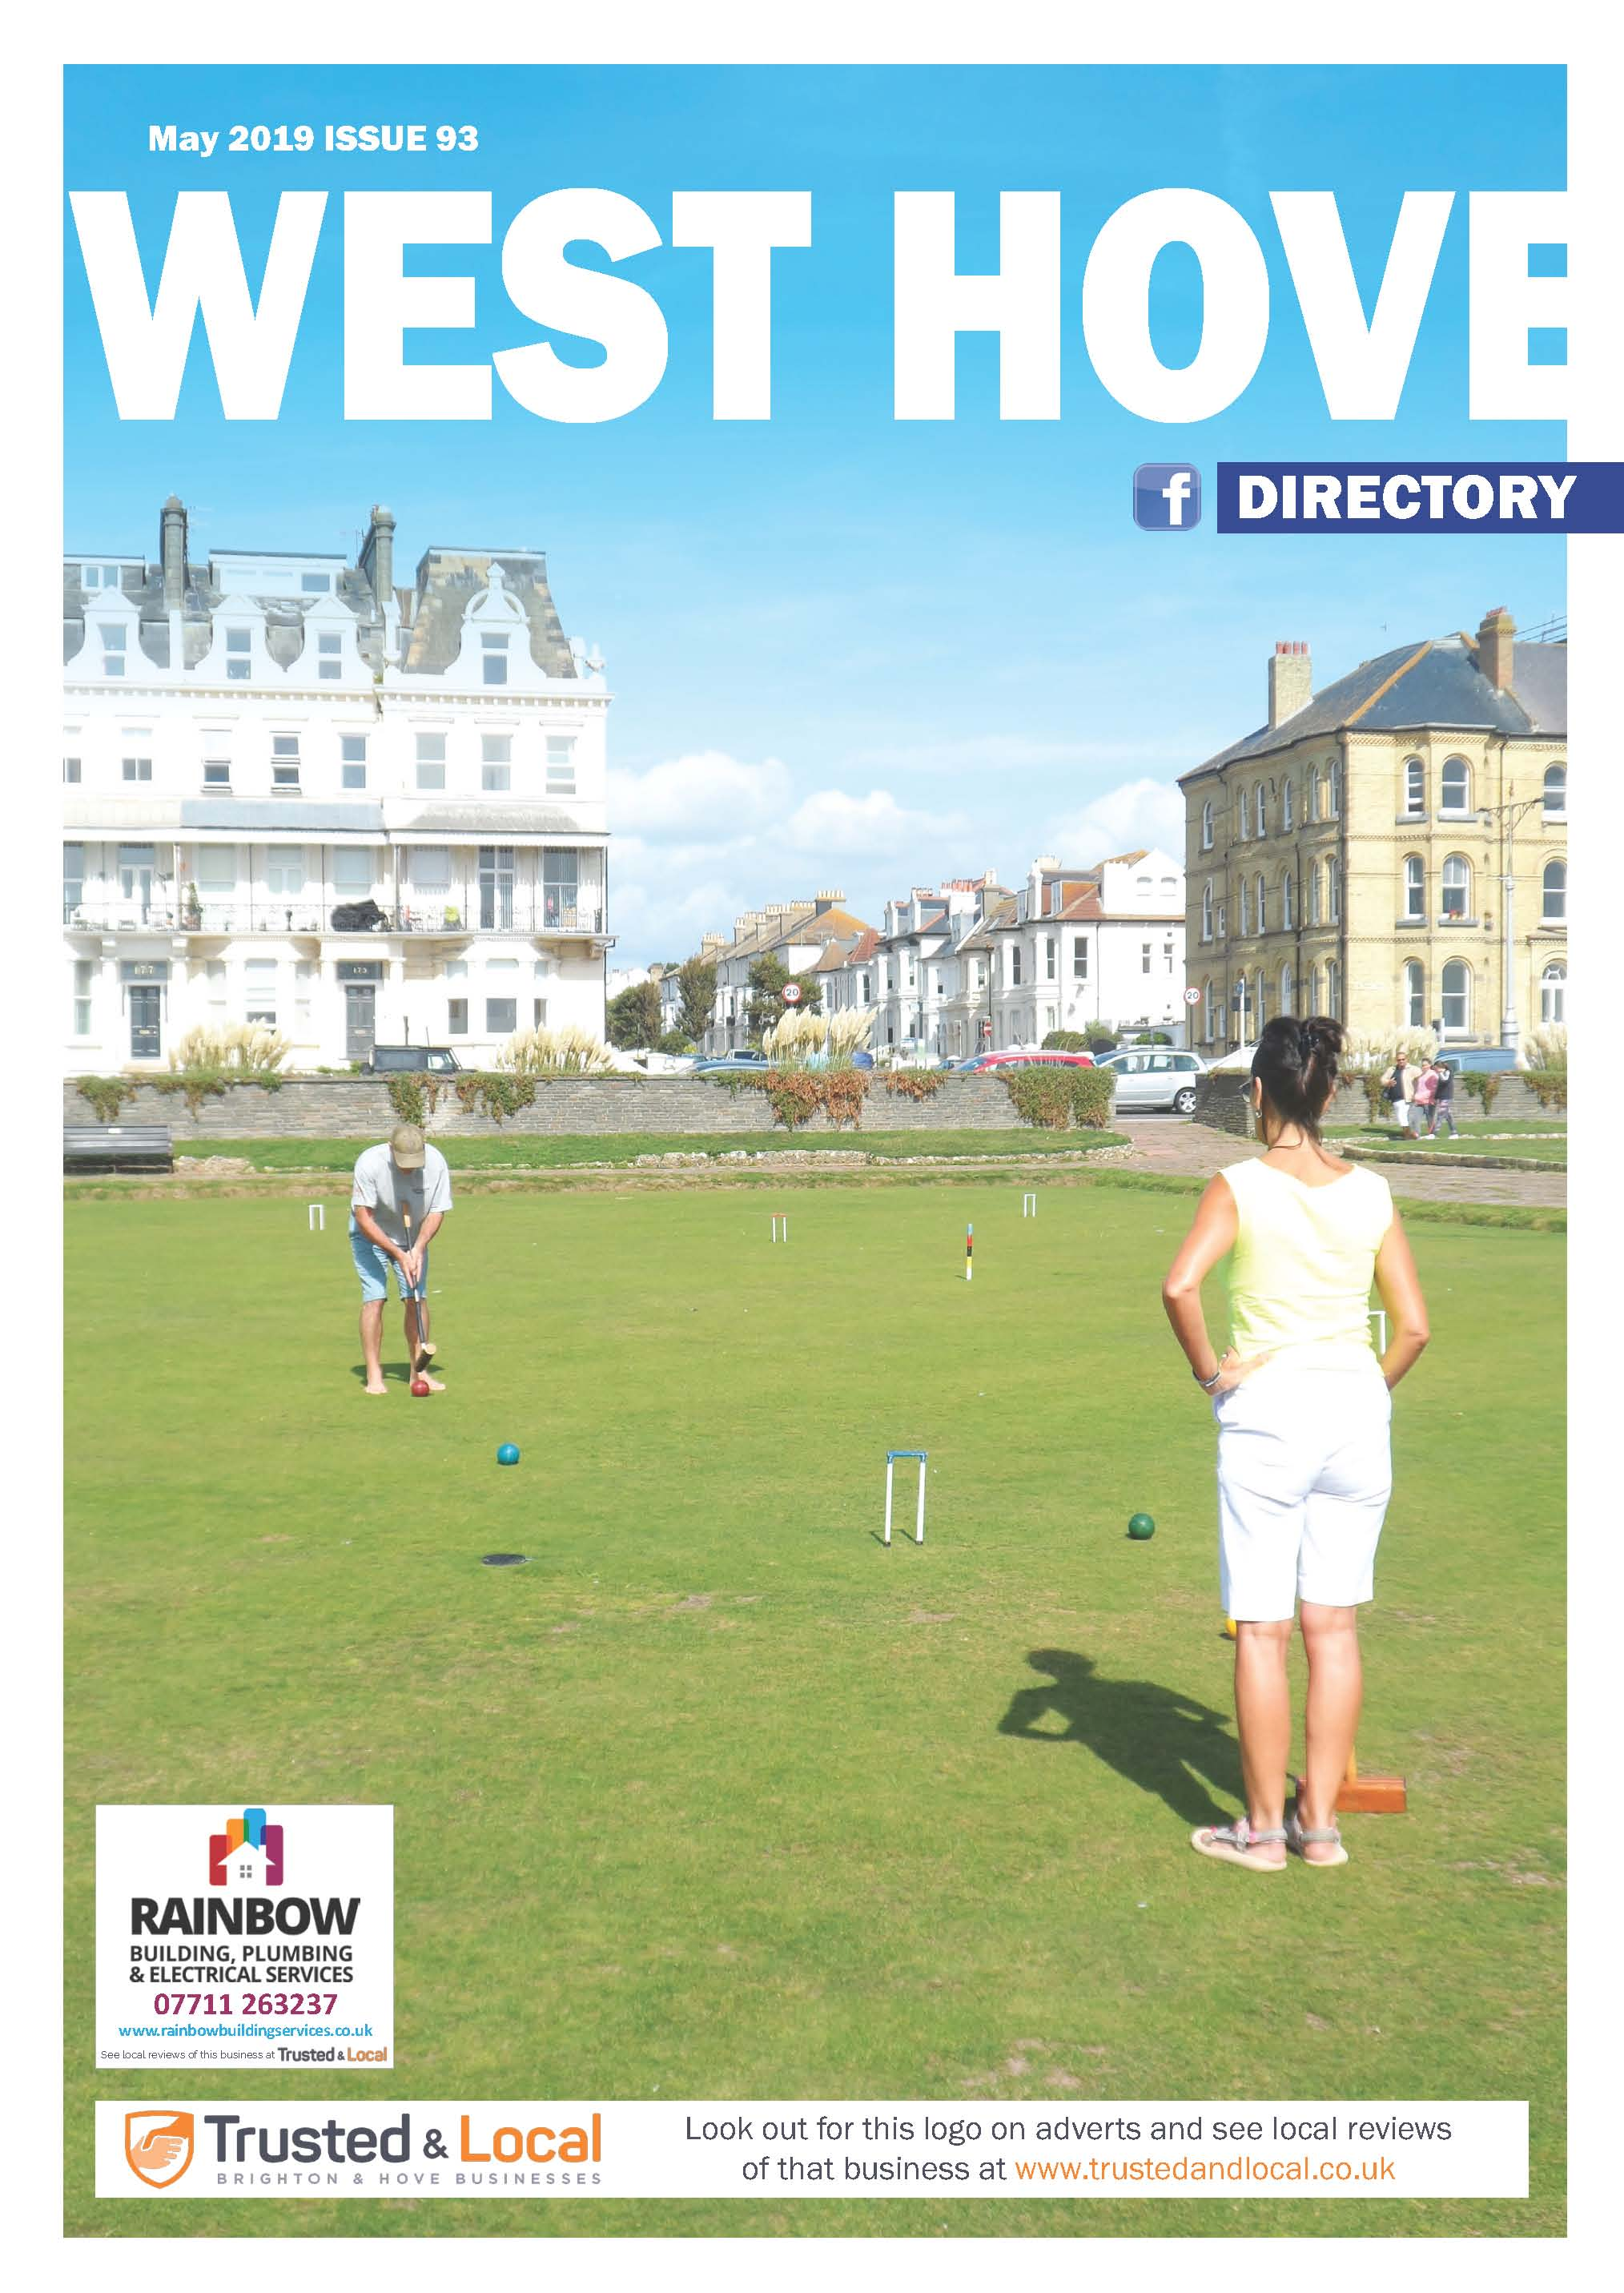 West Hove Directory